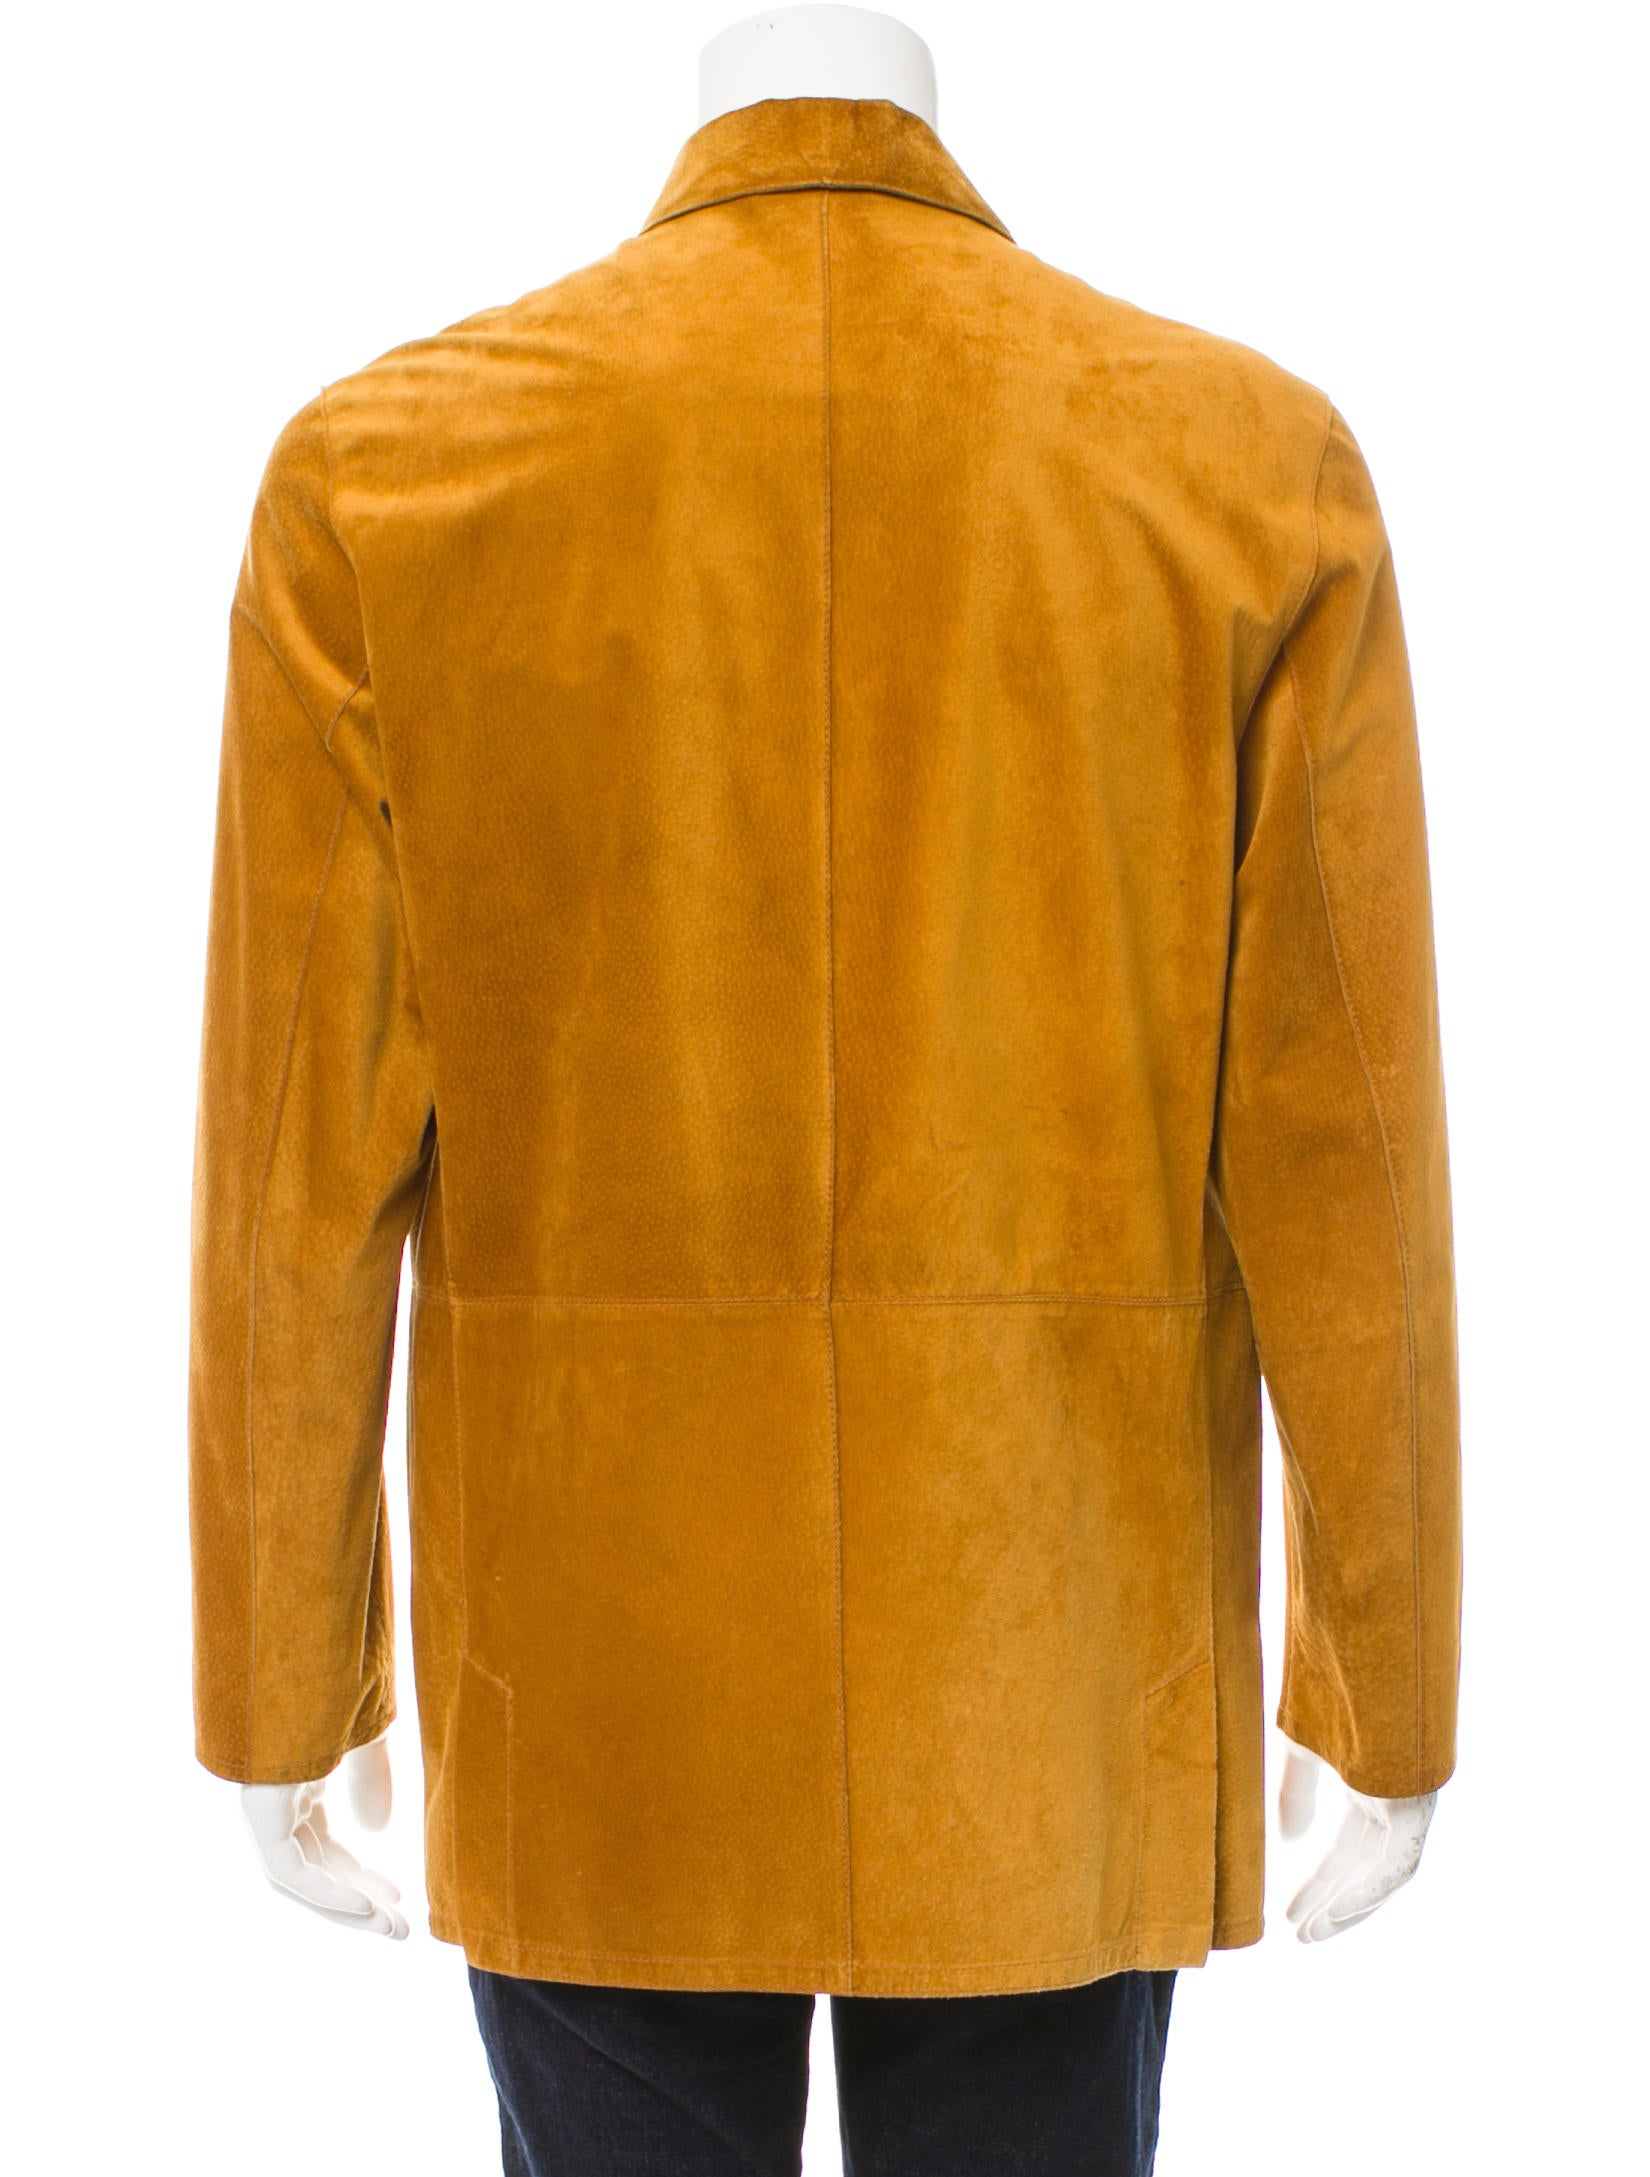 Salvatore Ferragamo Suede Shirt Jacket Clothing